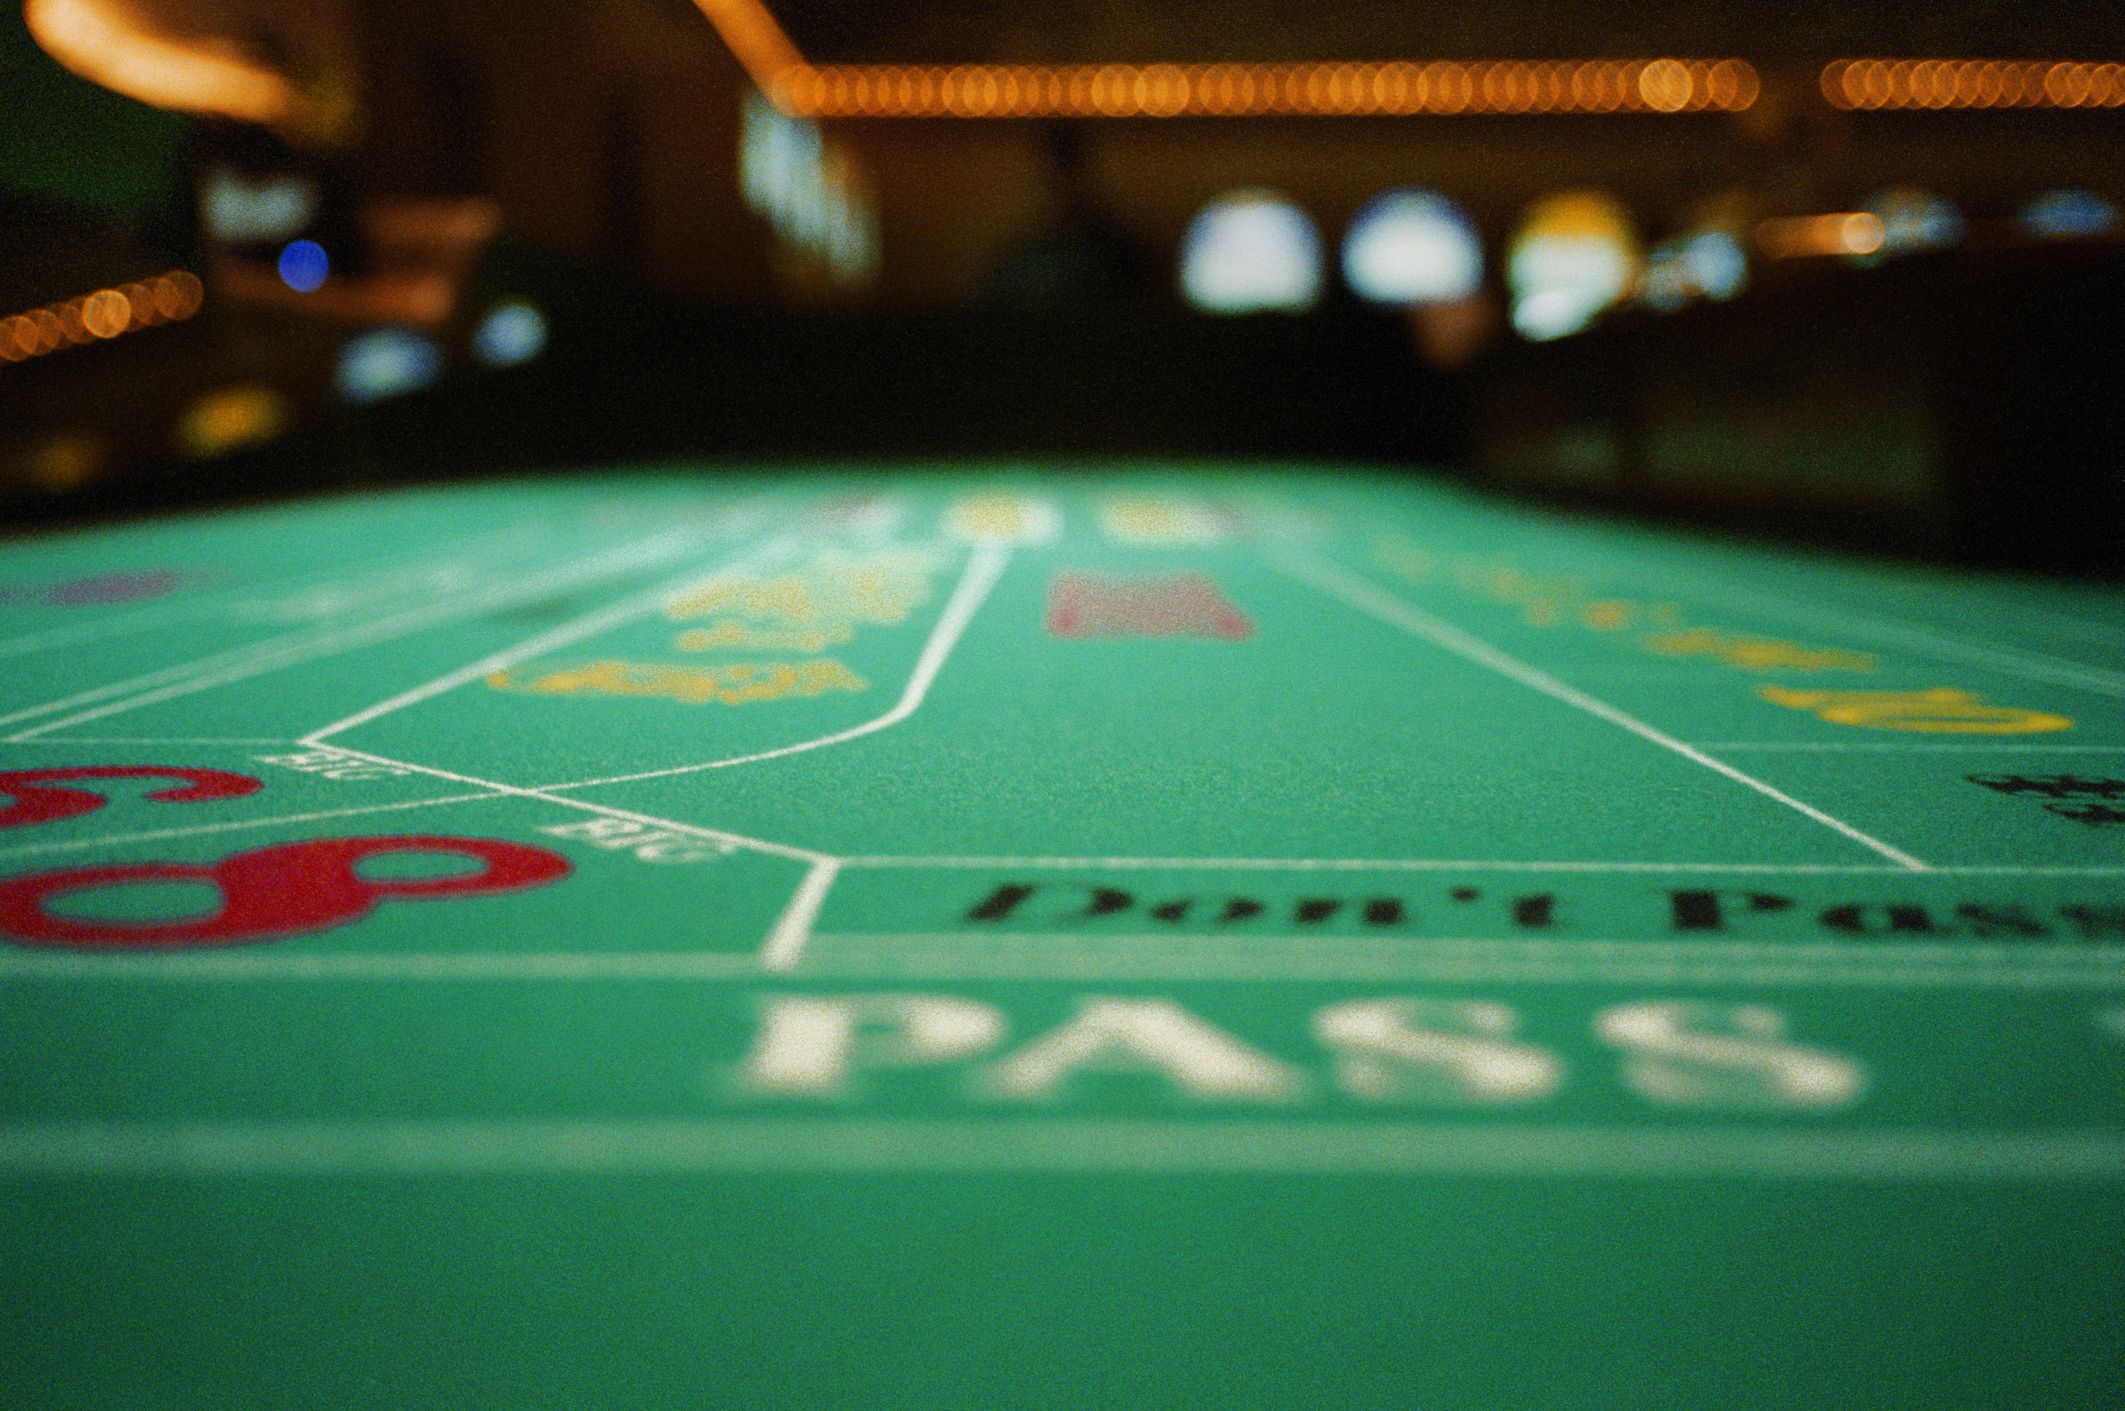 Casino Table hire London Craps Table